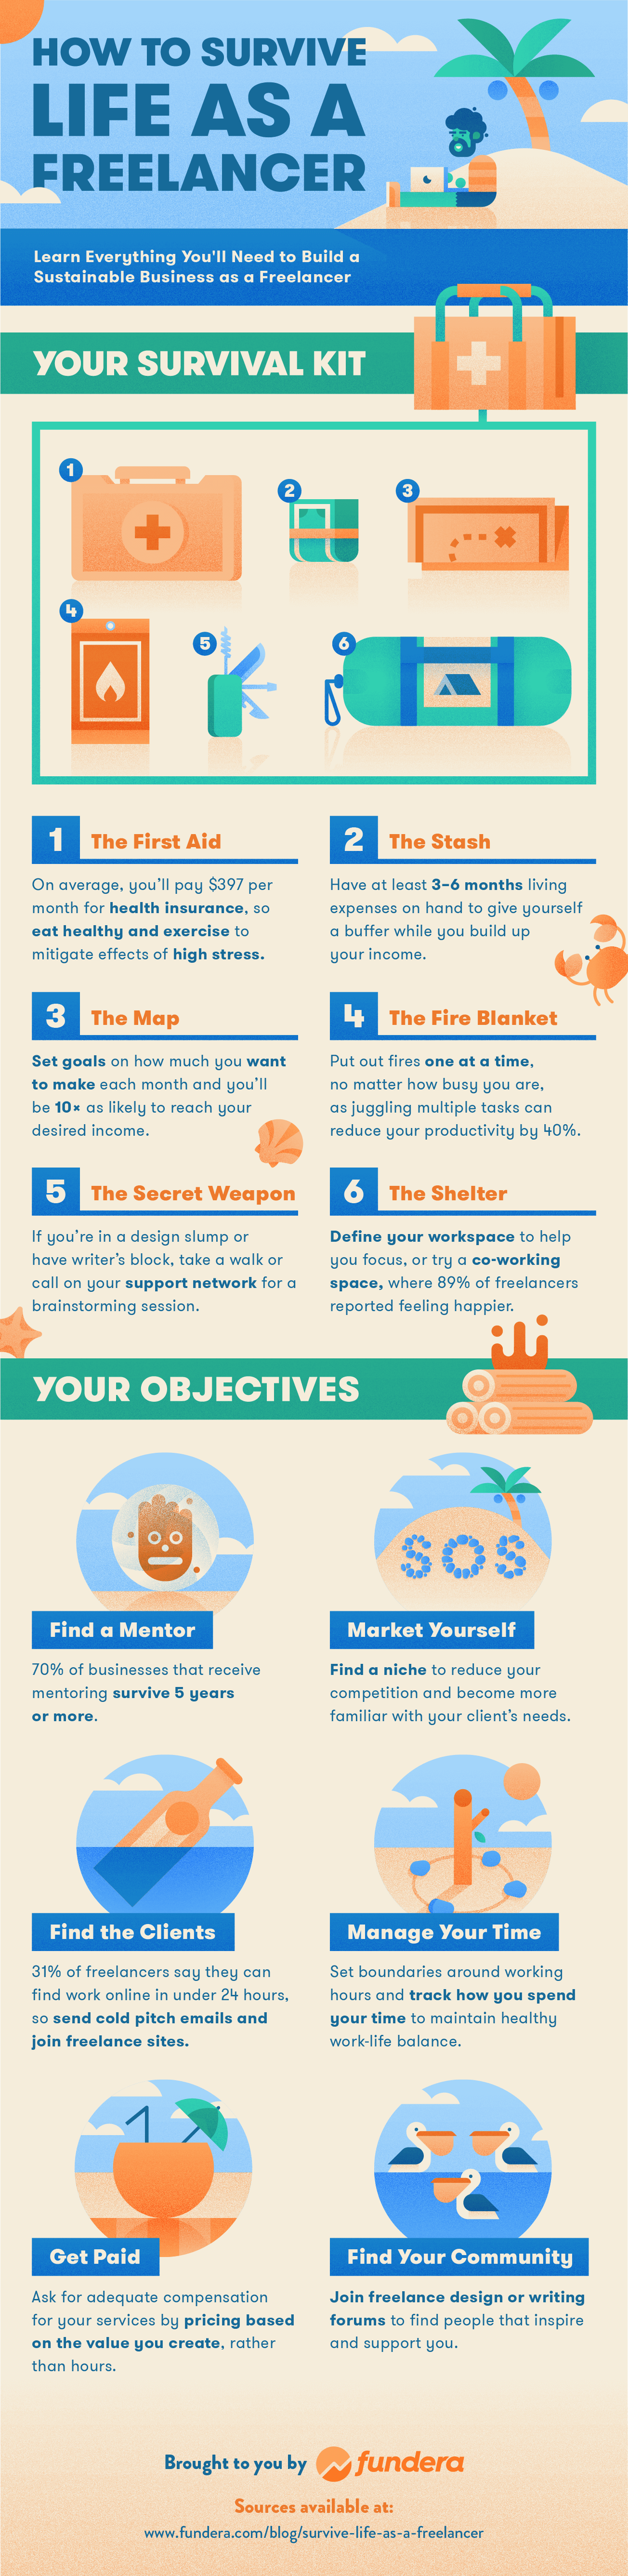 How to Survive Life as a Freelancer